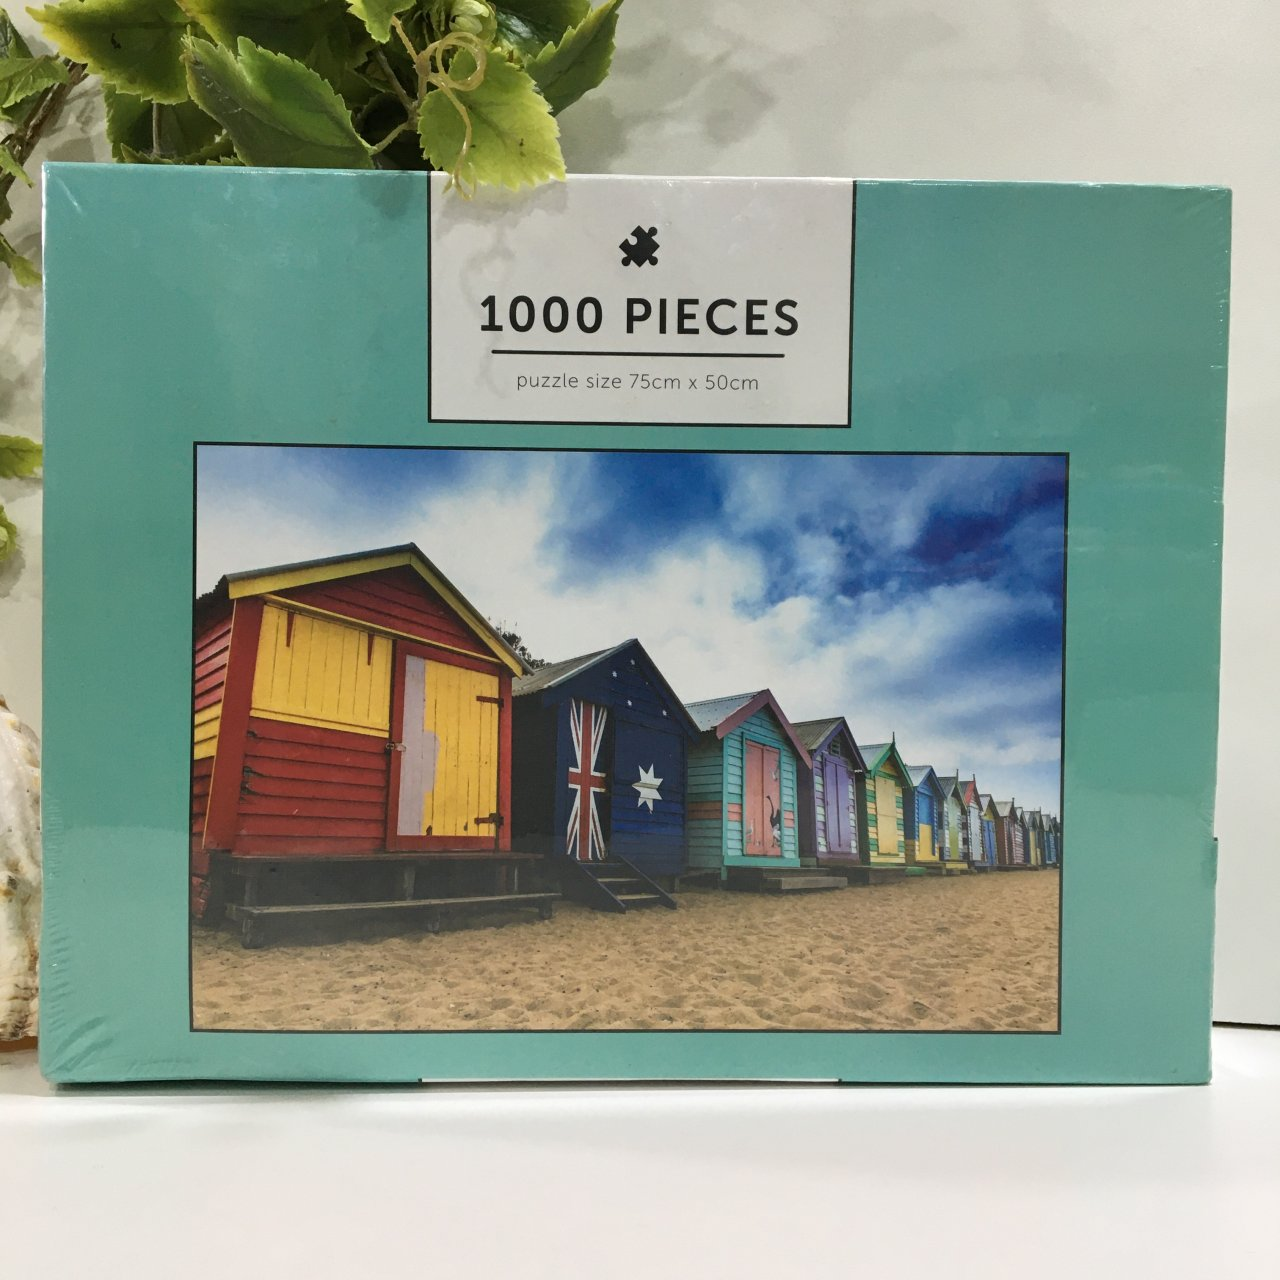 50% Off - Target 2 x 1000 Pieces Jigsaw Puzzles (RRP $10 each)